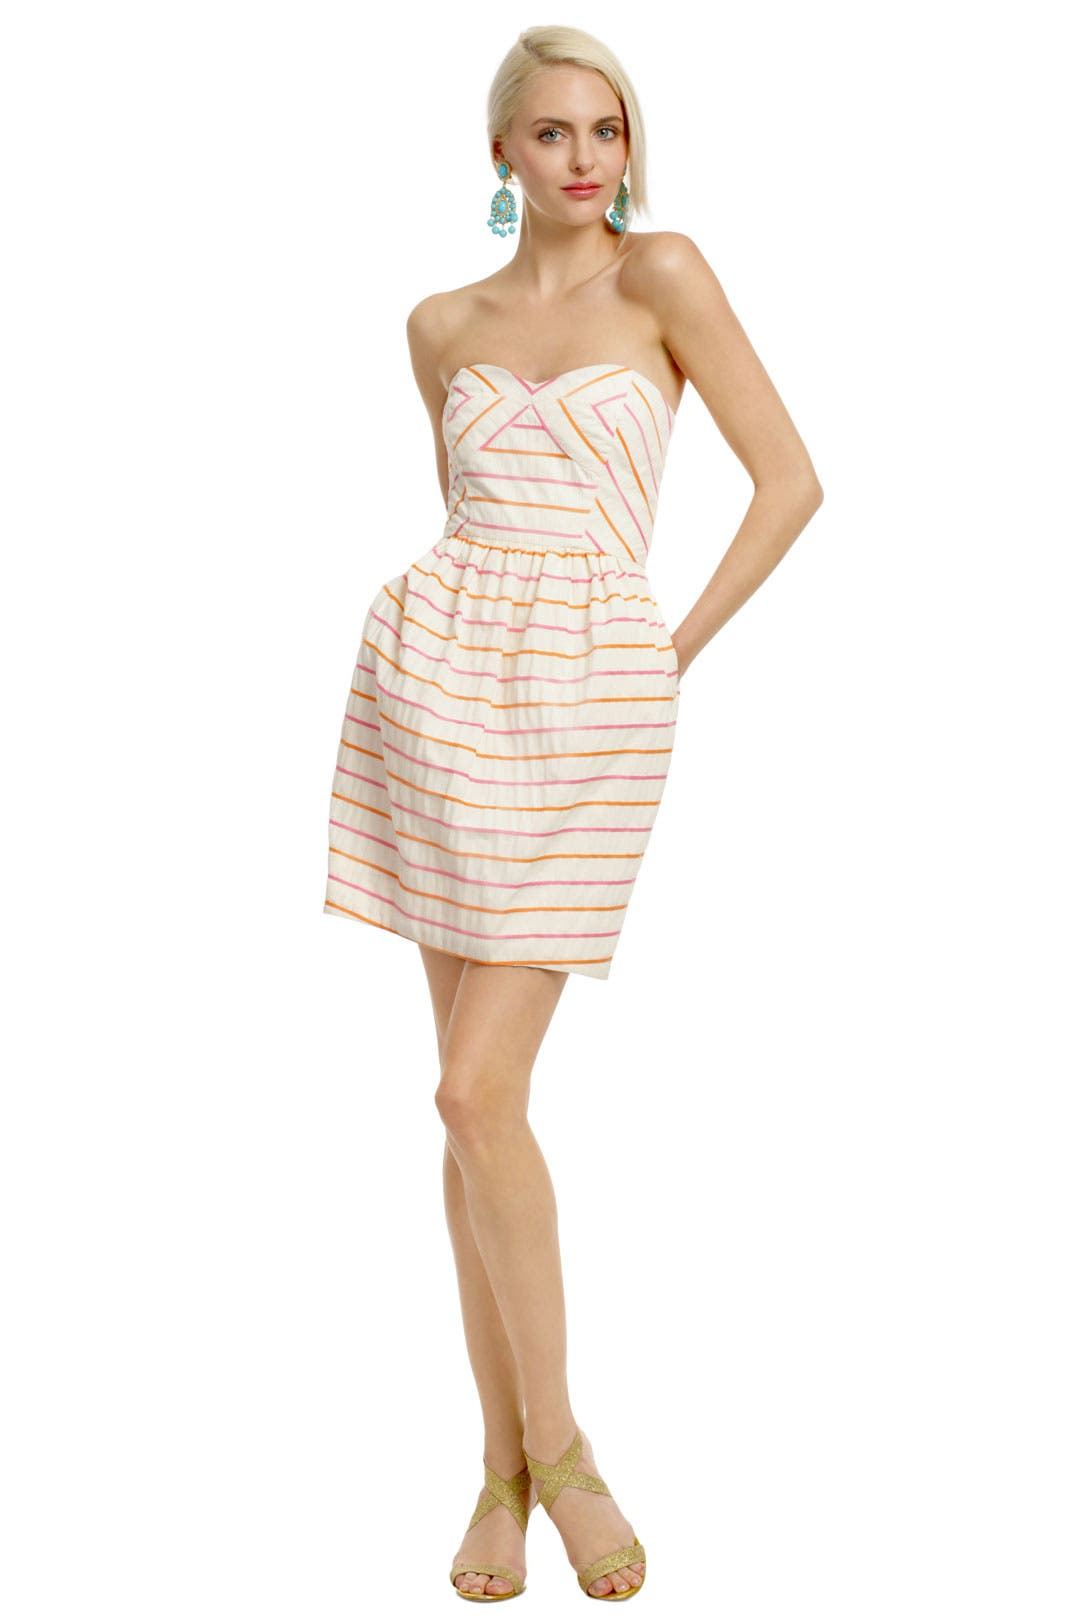 Fun in the Sun Dress by Shoshanna